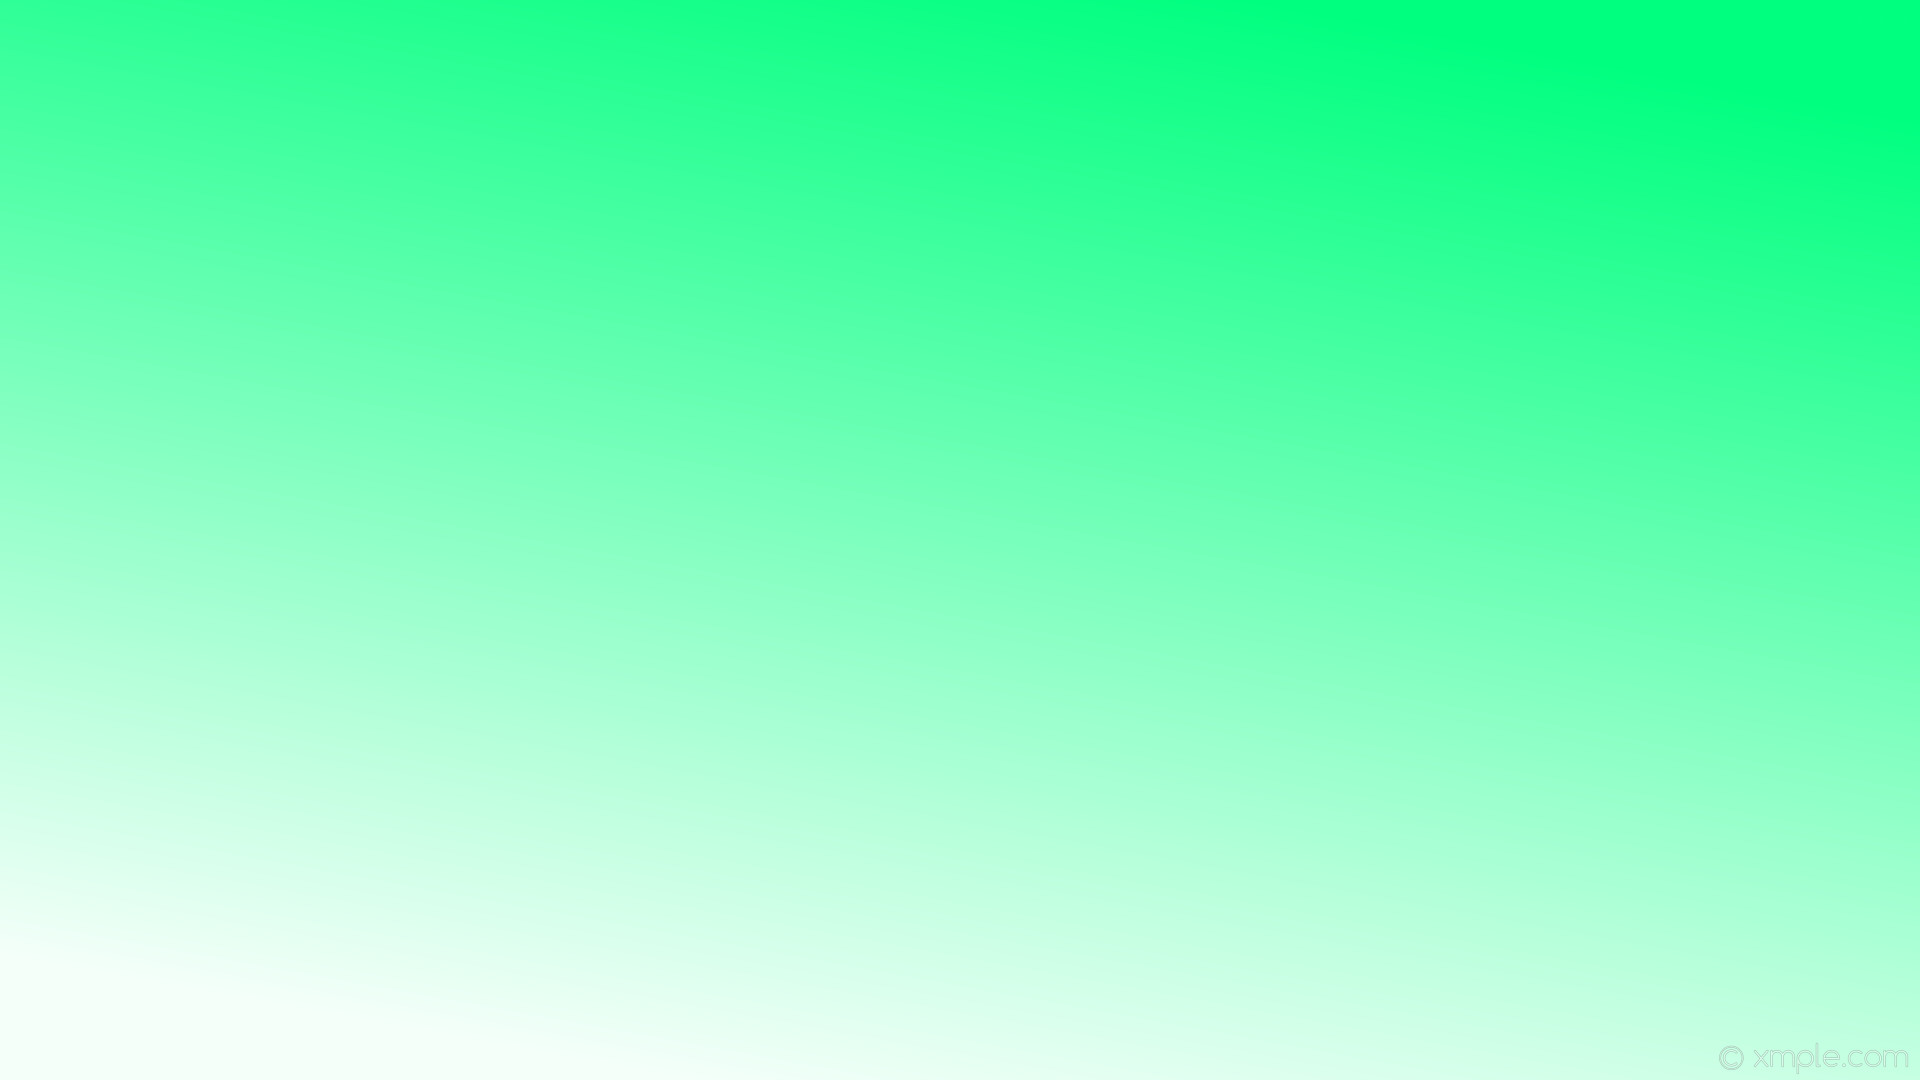 1920x1080 wallpaper green gradient linear white mint cream spring green #f5fffa  #00ff7f 240°